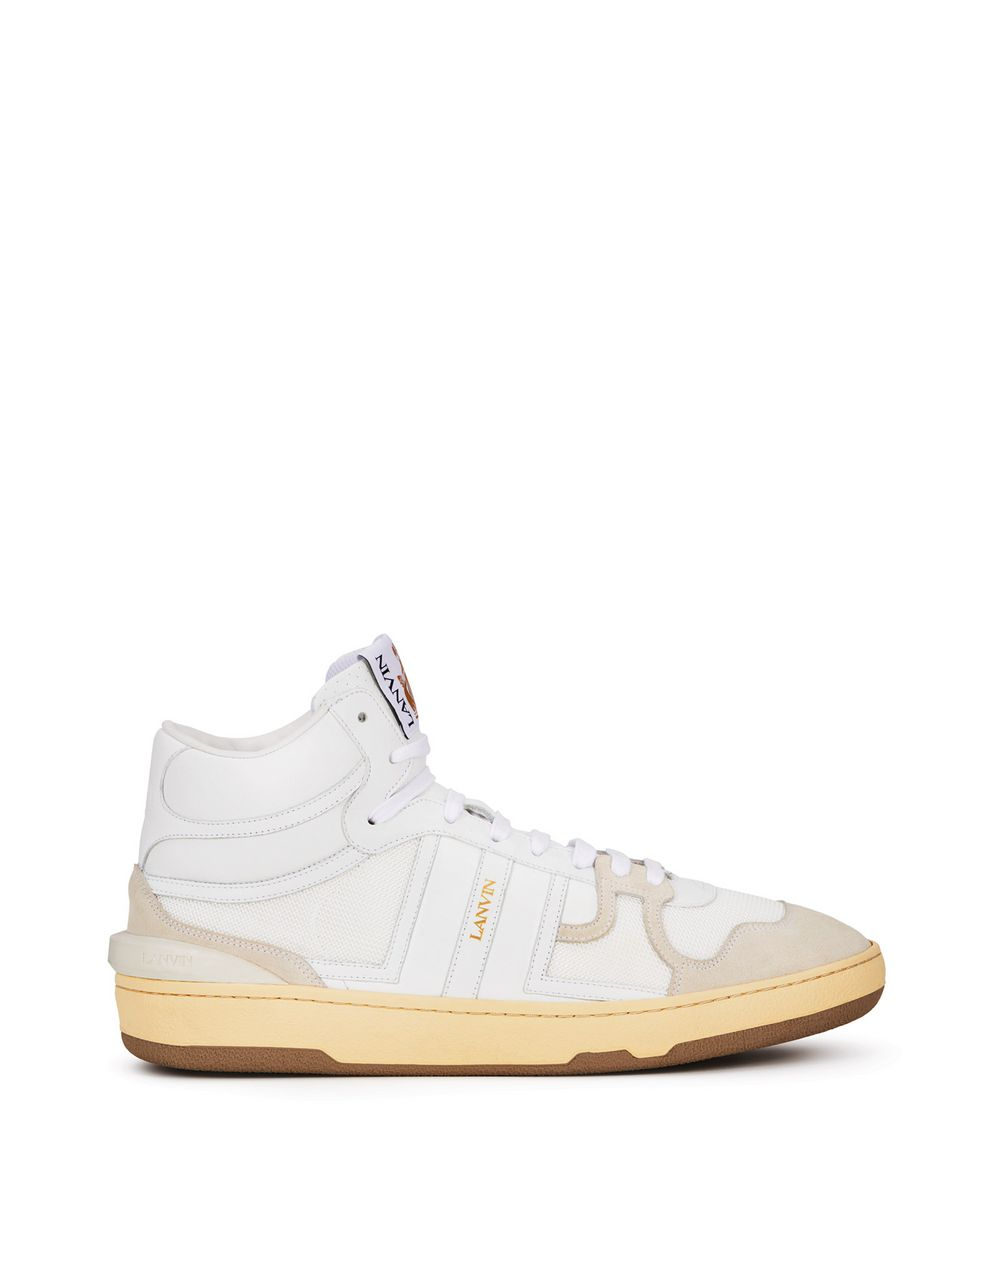 LEATHER CLAY HIGH-TOP SNEAKERS - Lanvin